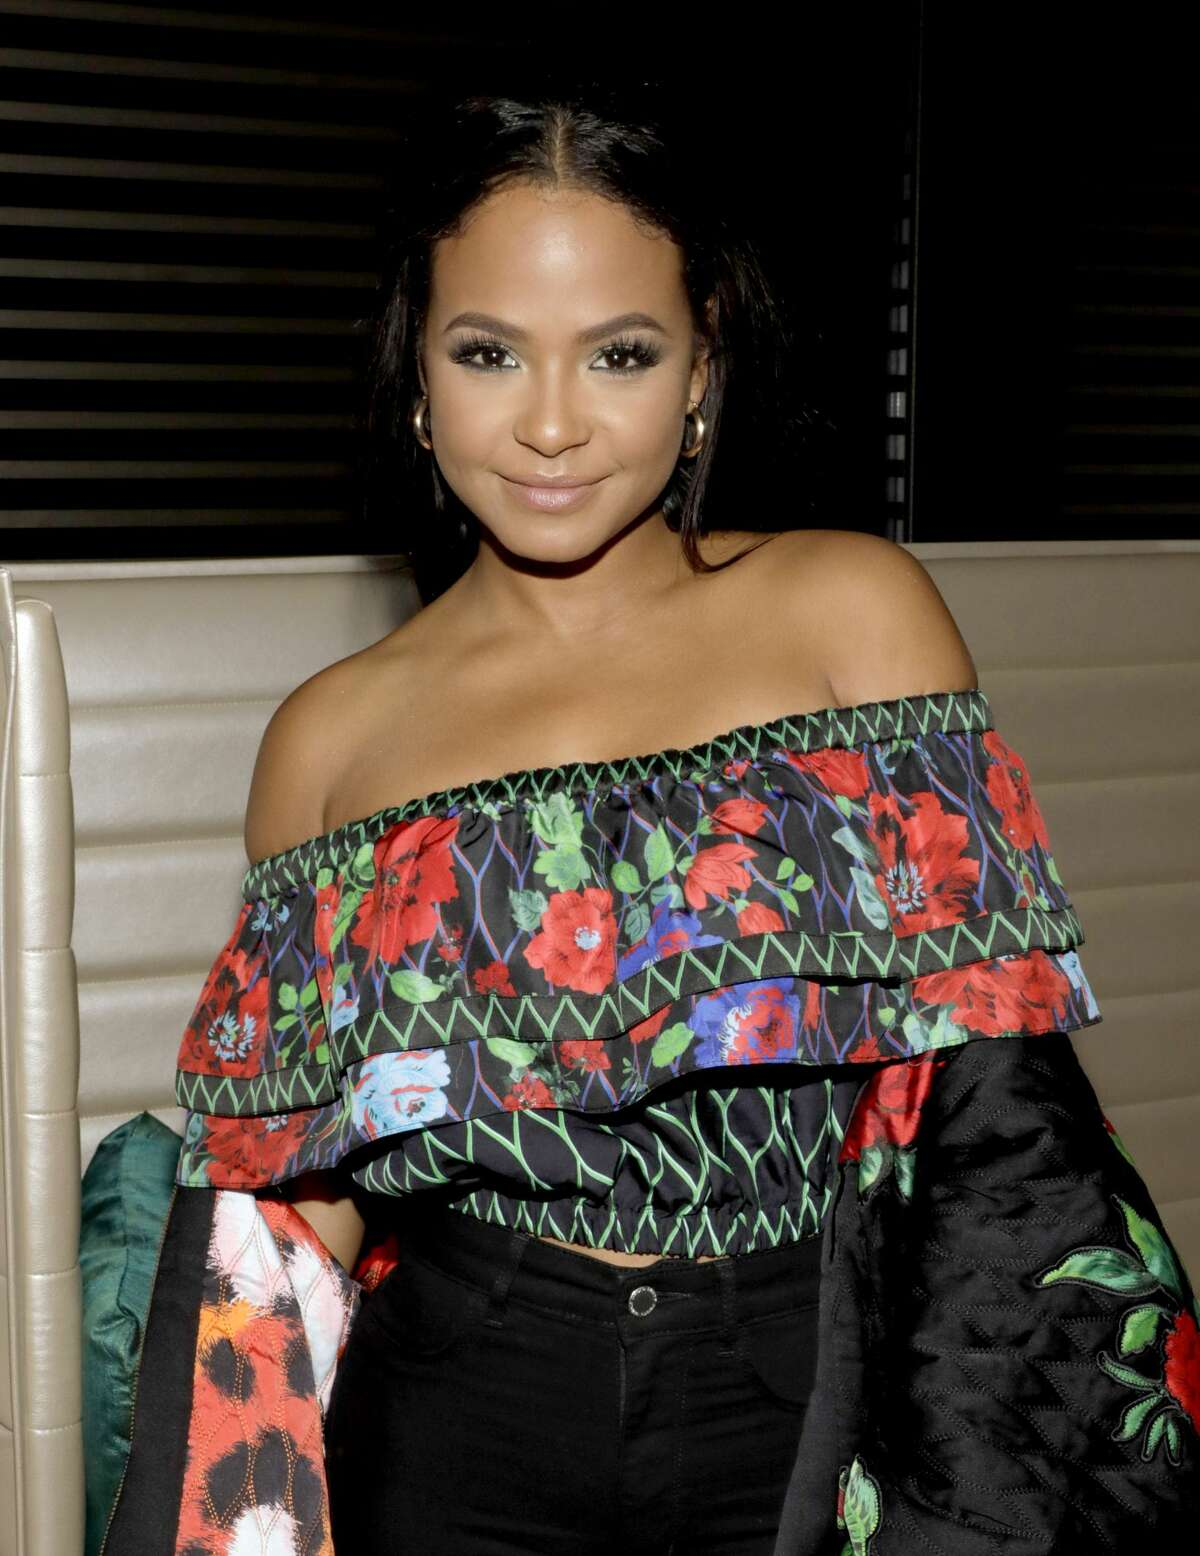 LOS ANGELES, CA - NOVEMBER 02: Actress/Singer Christina Milian attends Latina's 20th Anniversary celebrating The Hollywood Hot List Honorees at STK on November 2, 2016 in Los Angeles, California. (Photo by Rachel Murray/Getty Images for Latina Magazine)